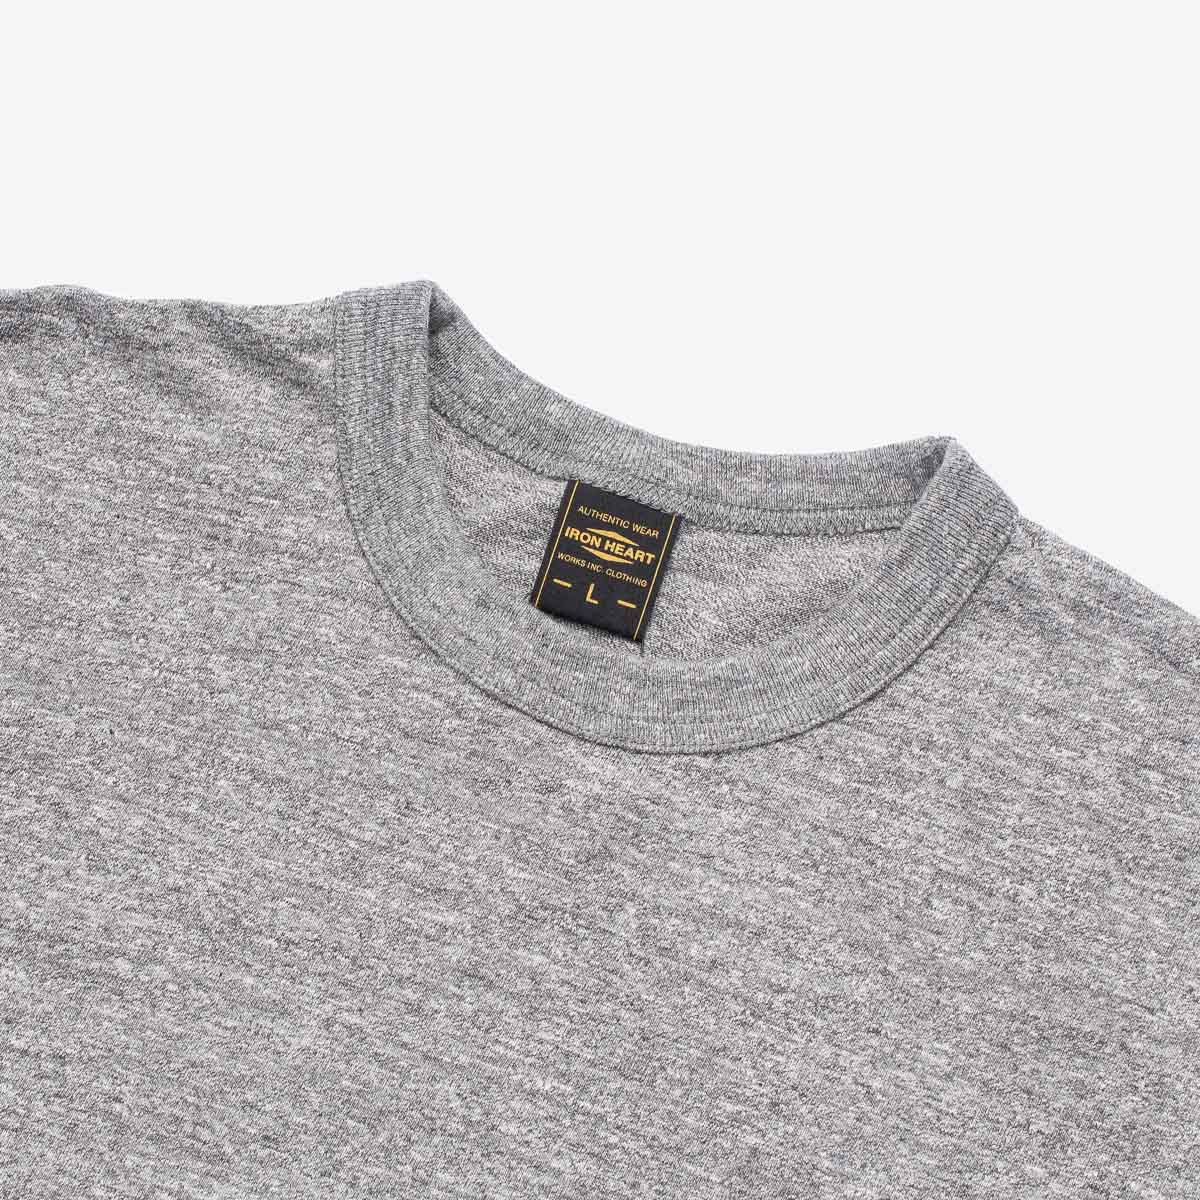 IHT-1610L - 6.5oz Basic T-Shirt Grey